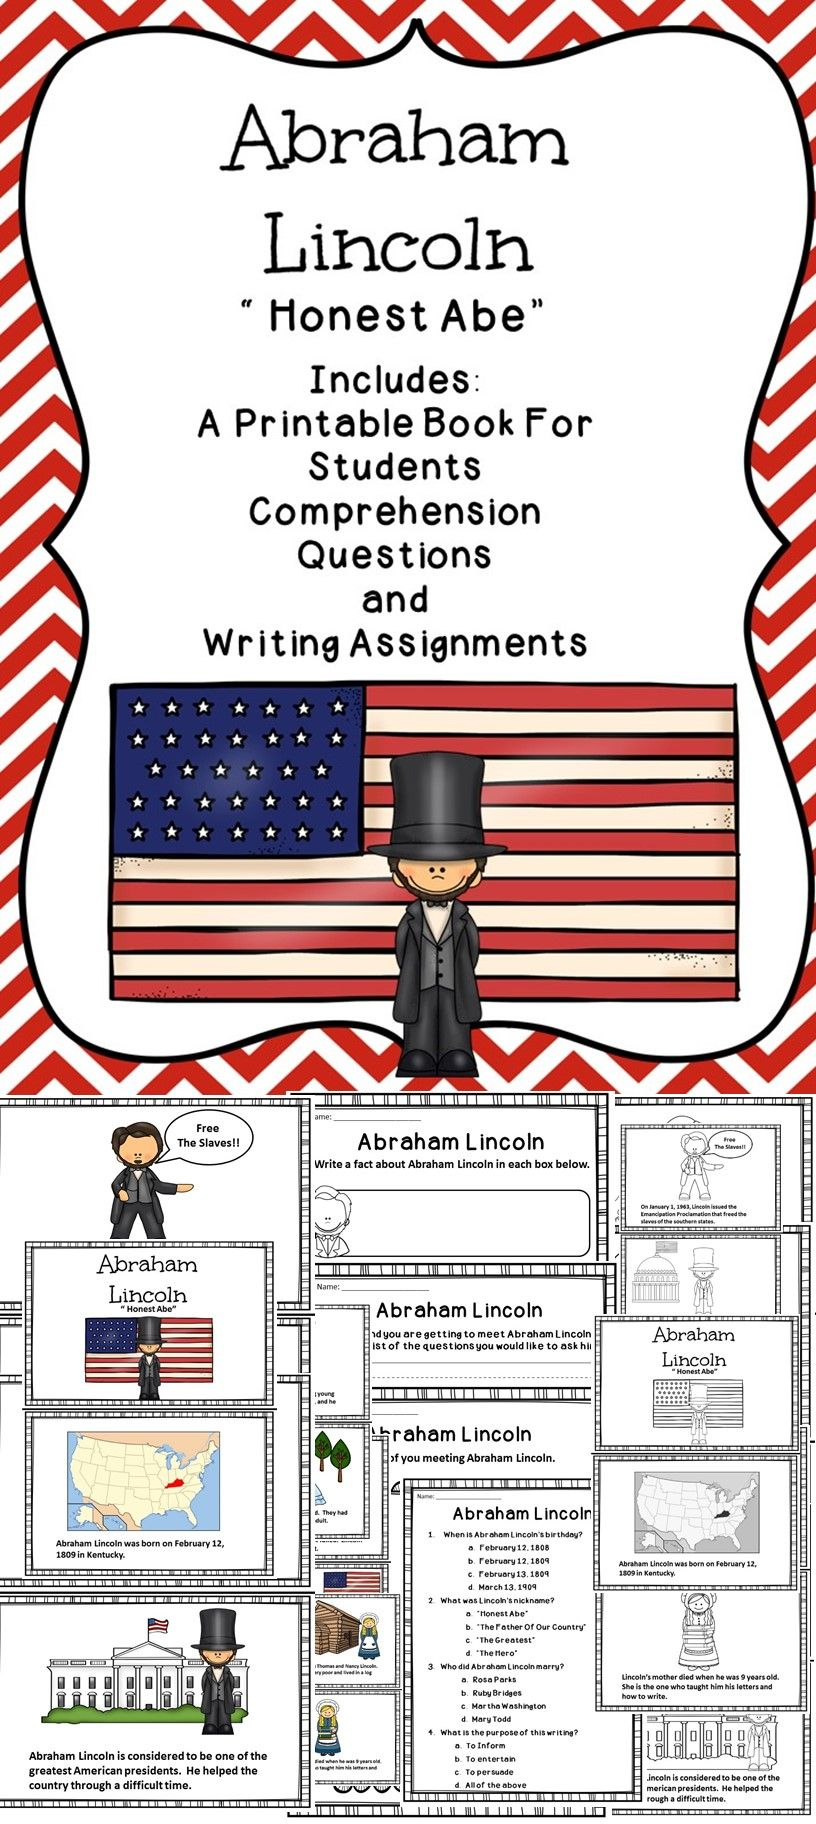 Abraham Lincoln Printable Activities For The Elementary Classroom Education Social Studies Lesson Social Studies Lesson Plans Teaching Activities [ 1824 x 816 Pixel ]